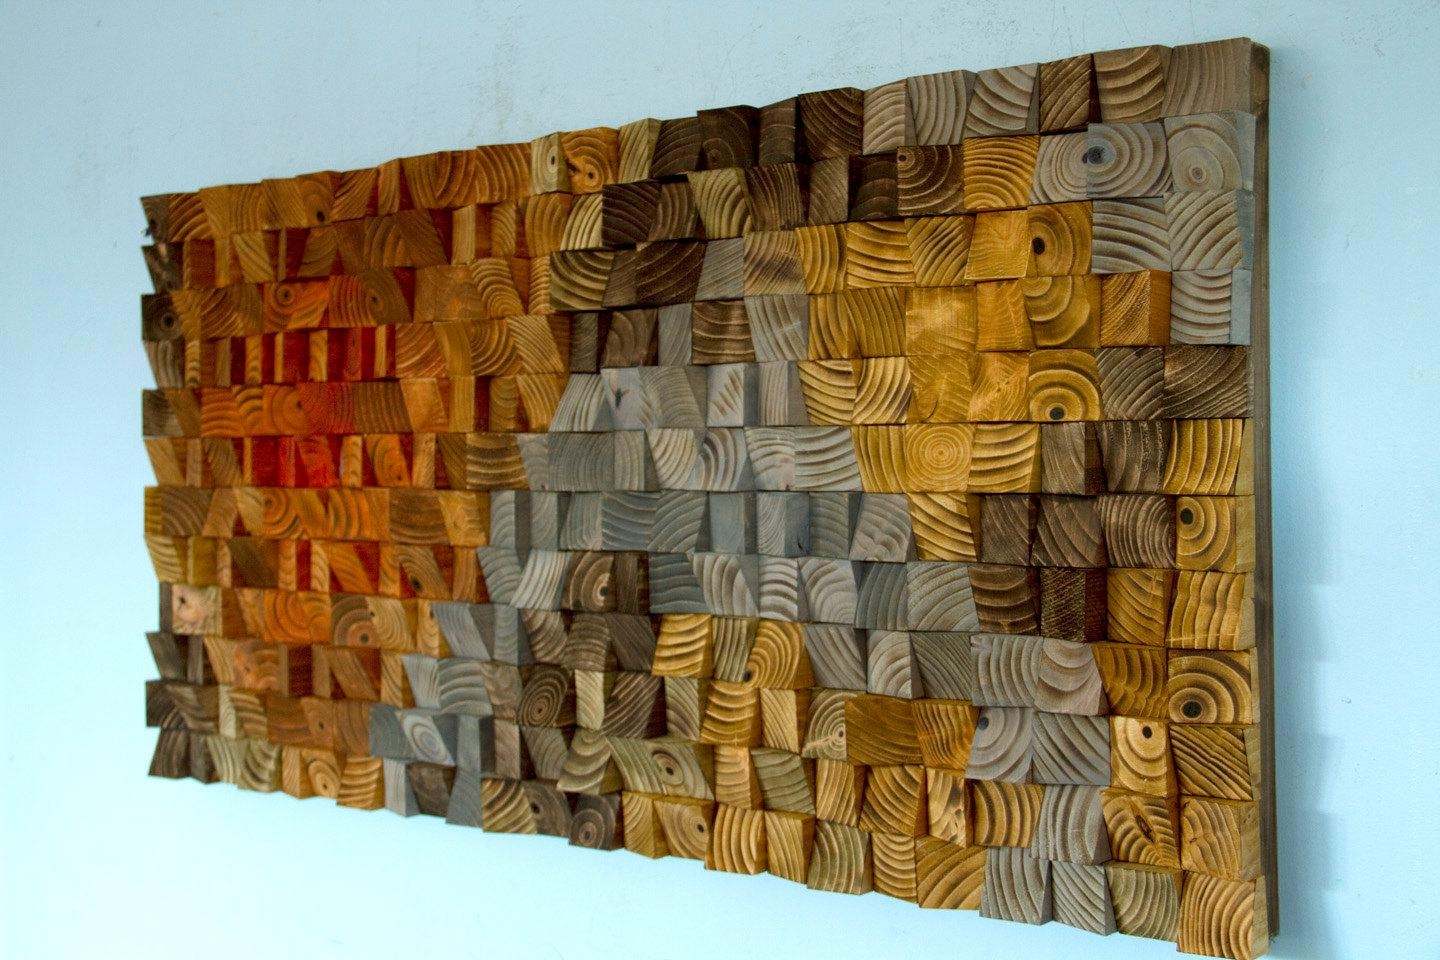 Rustic Wood Wall Art Wood Wall Sculpture Abstract Wood Art In Wall Art On Wood (Image 9 of 20)